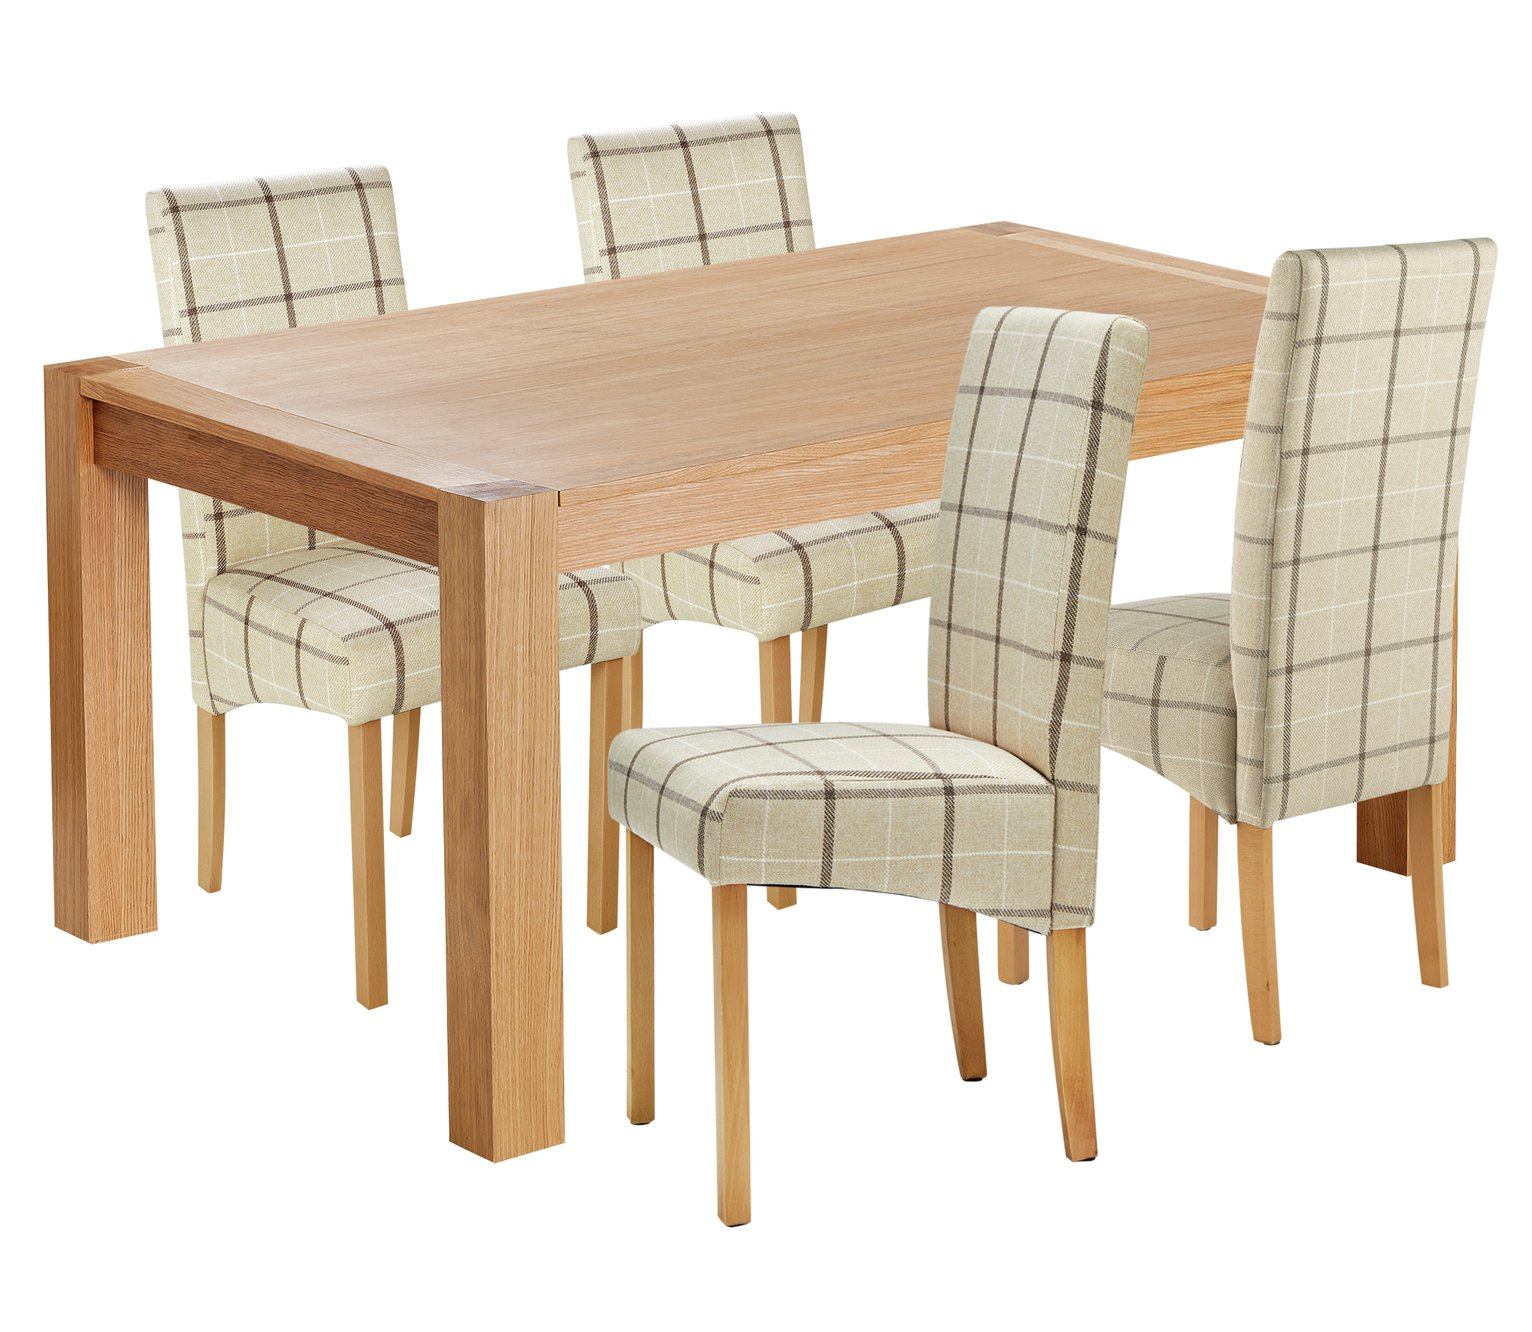 Argos Home Alston Oak Veneer Table & 4 Chairs - Cream Check